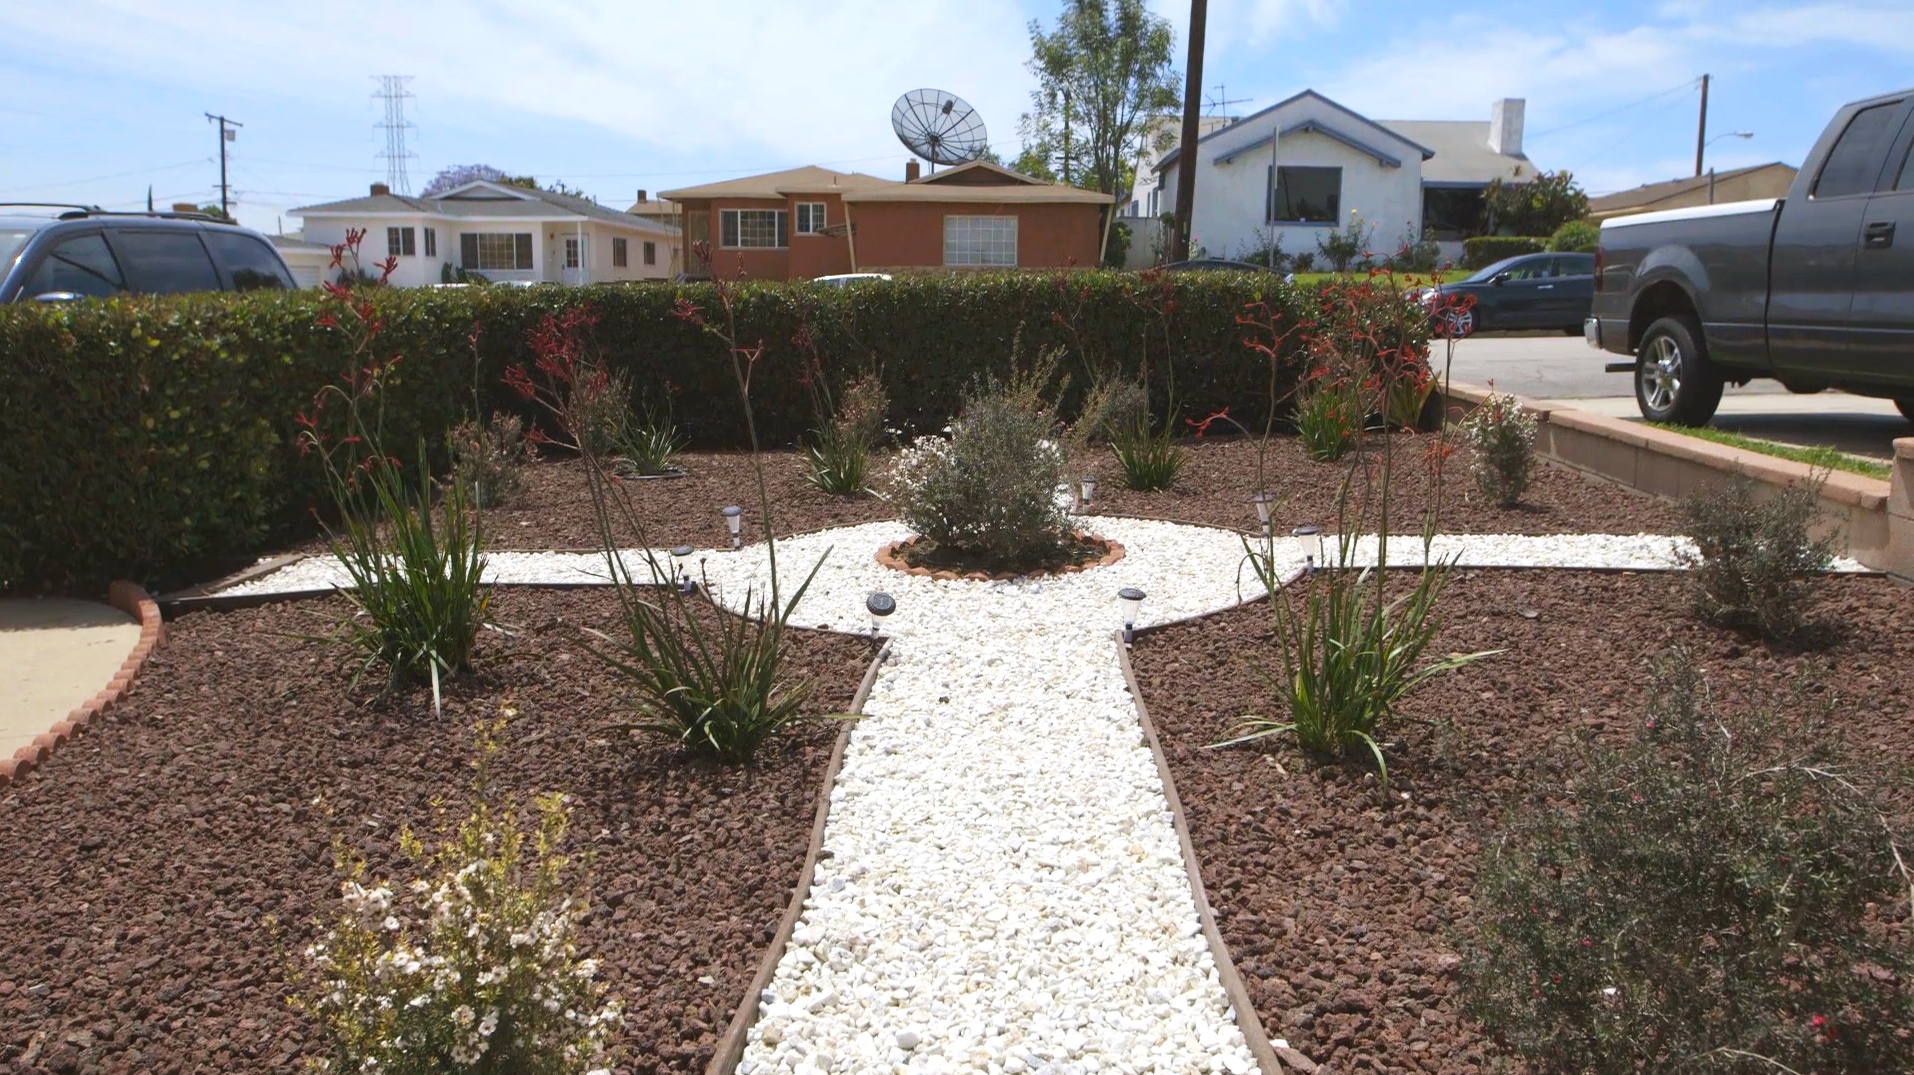 5 water saving ways to replace lawns during californias drought